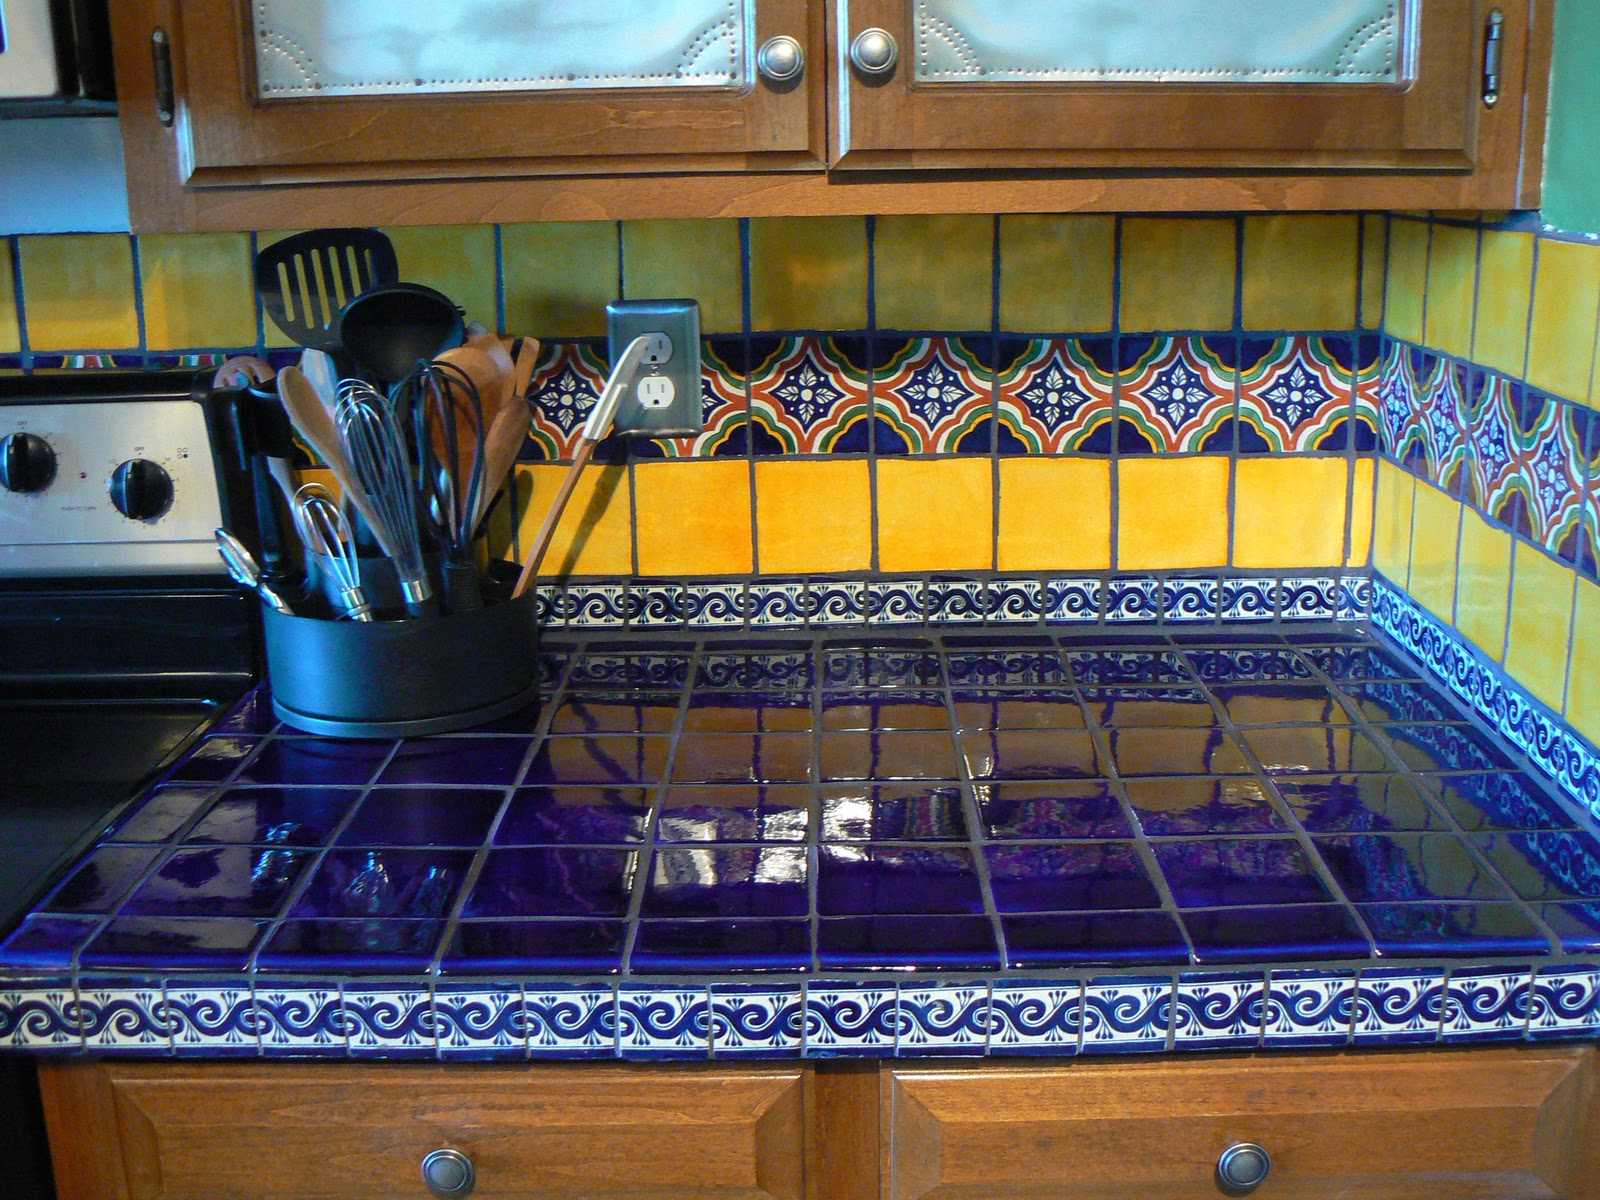 Mexican Backsplash Tiles Kitchen Stone Island Classic Kitchens Simple Home Decoration